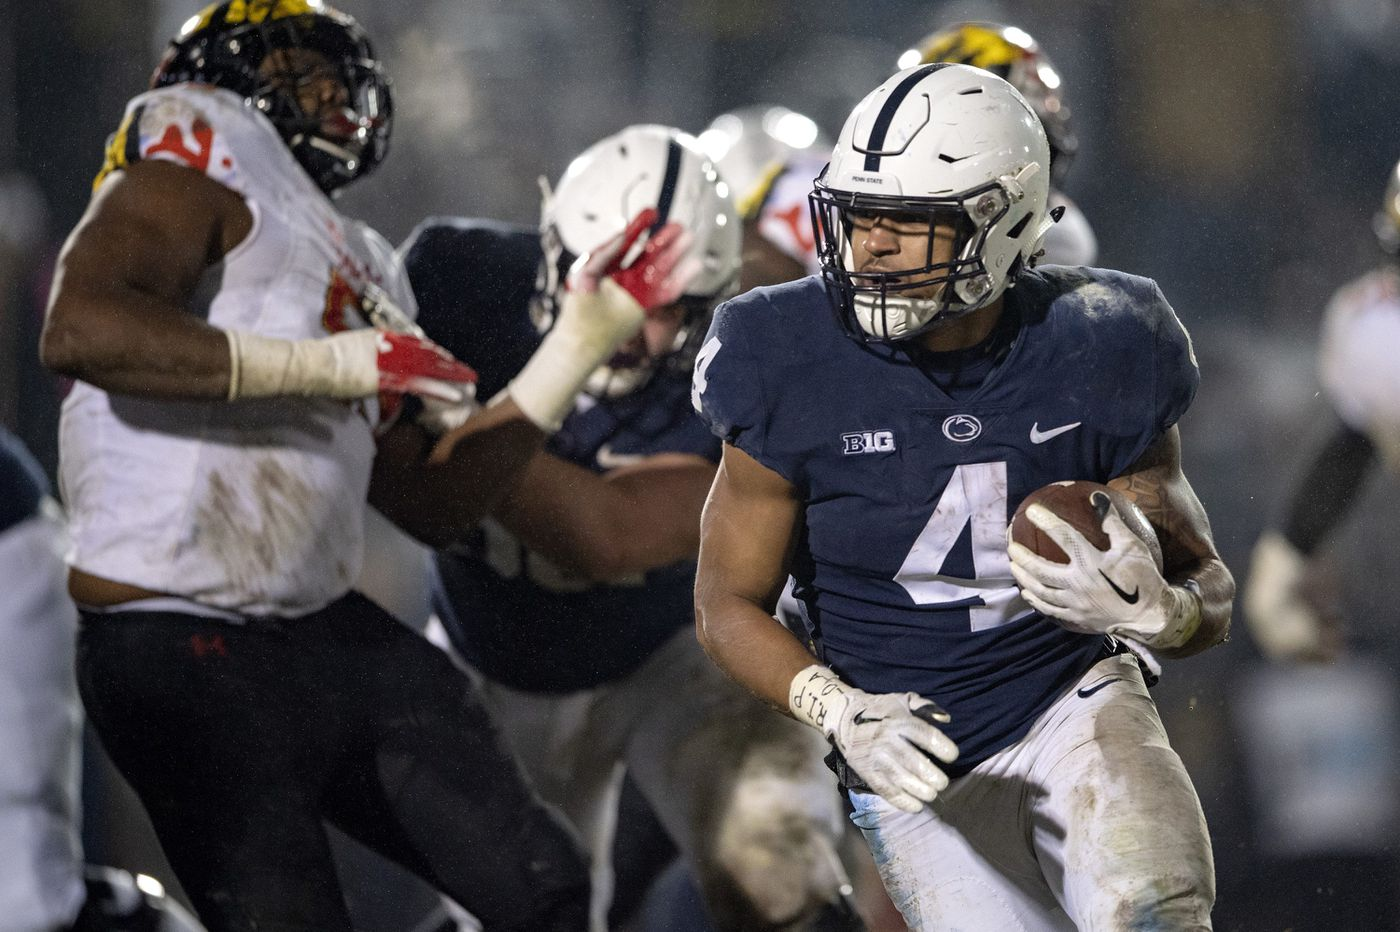 Penn State remains at No. 12 in College Football Playoff rankings